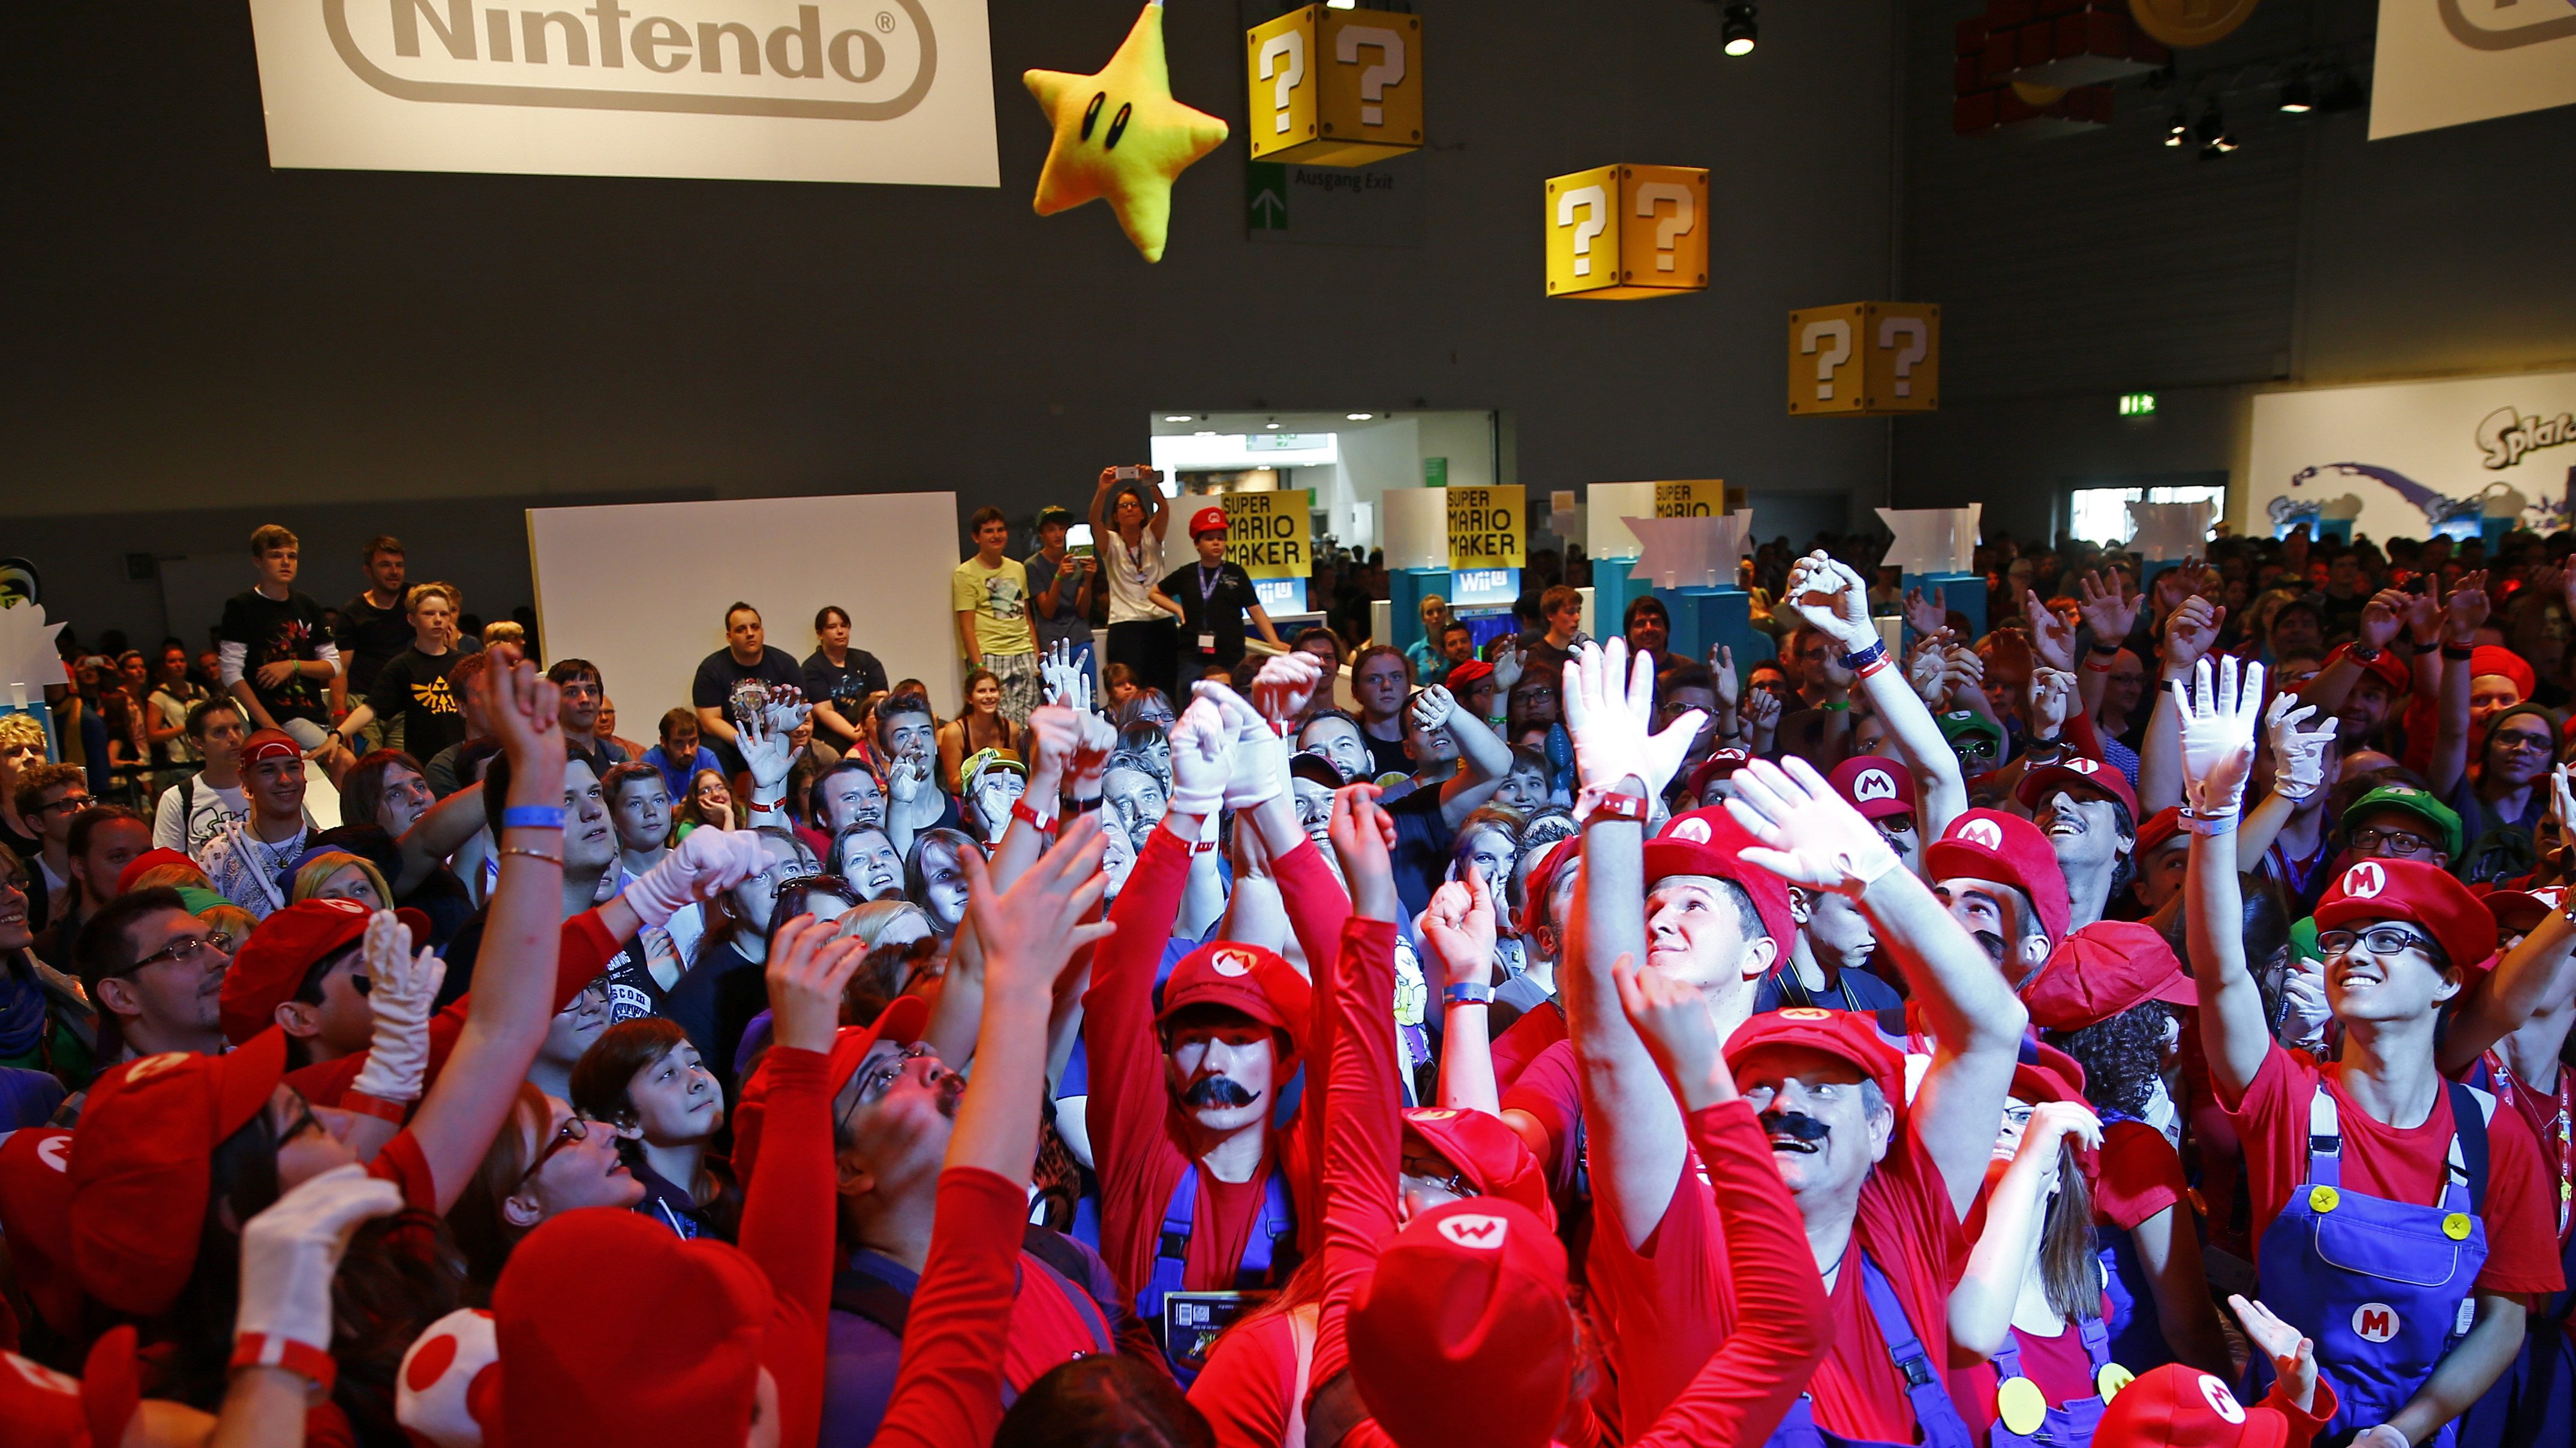 "Cosplayers dressed as character ""Mario"" celebrate the 30th anniversary of ""Super Mario Bros."" video games developed by Nintendo during the Gamescom 2015 fair in Cologne, Germany August 6, 2015. The Gamescom convention, Europe's largest video games trade fair, runs from August 5 to August 9."